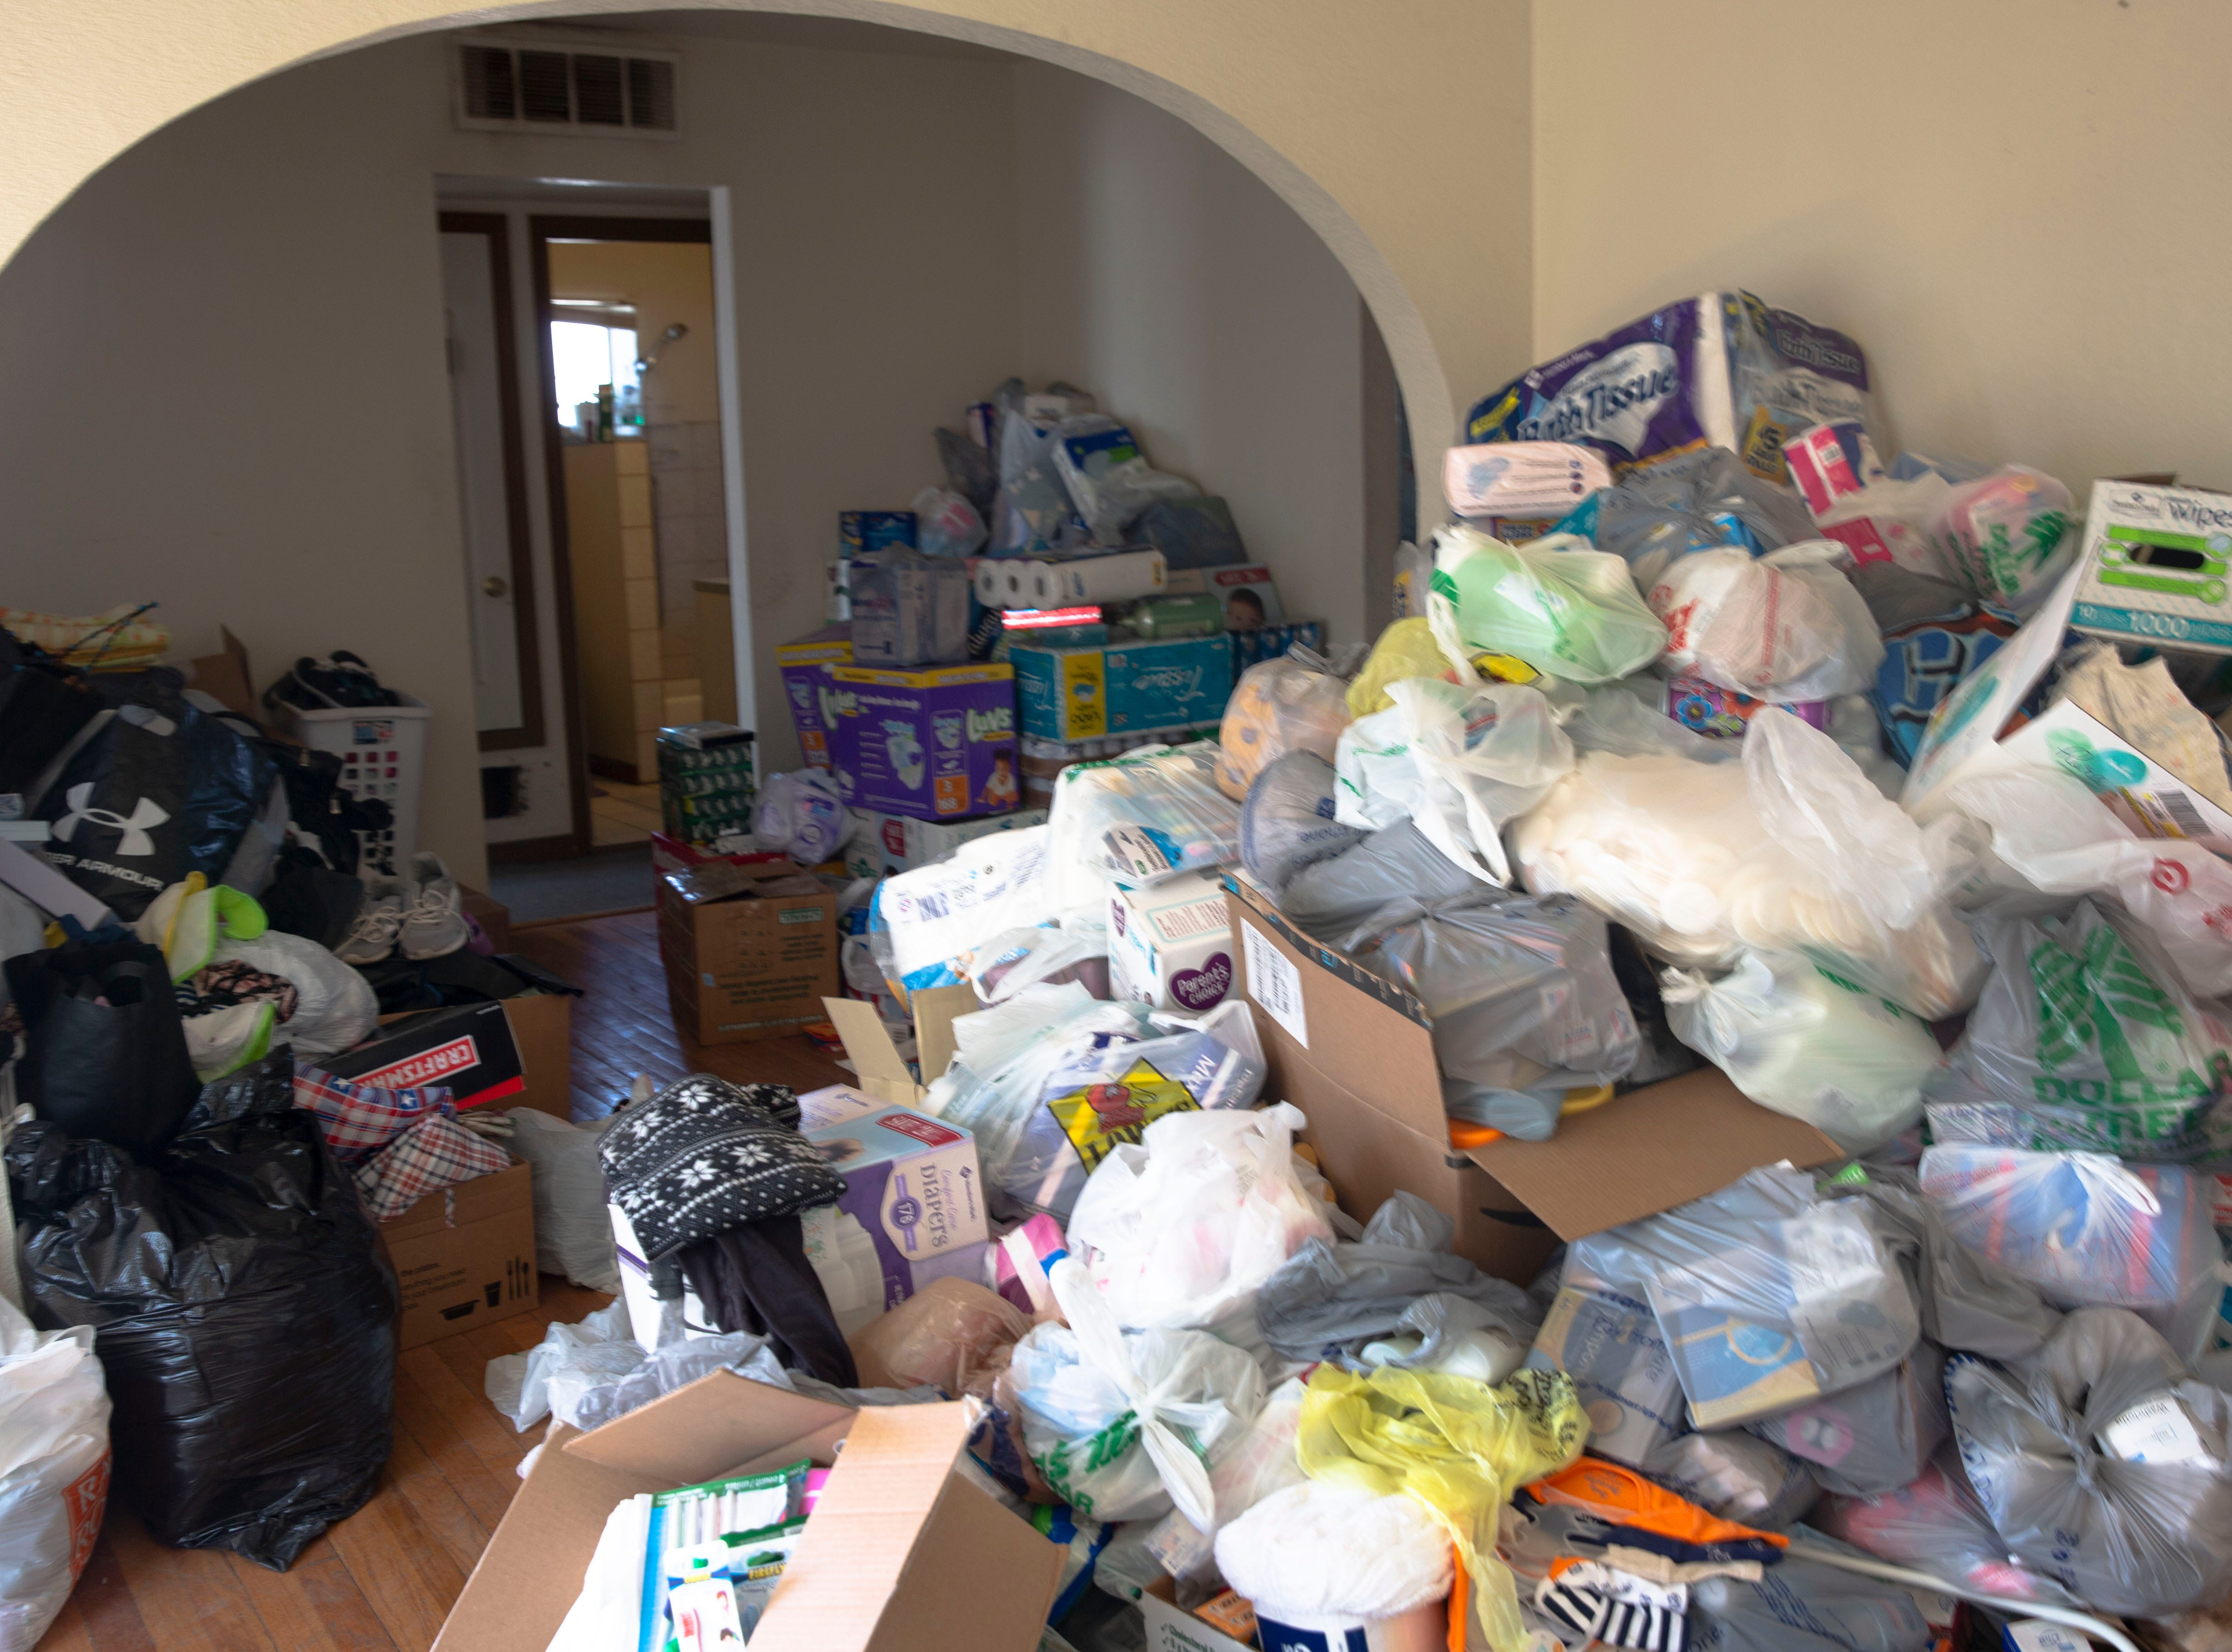 A home on the Las Cruces Gospel Rescue Mission's property is being used to hold donations from the community for migrant families who have been dropped off by Border Patrol in Las Cruces. Shown here are bags of donated items on Monday April 15, 2019.